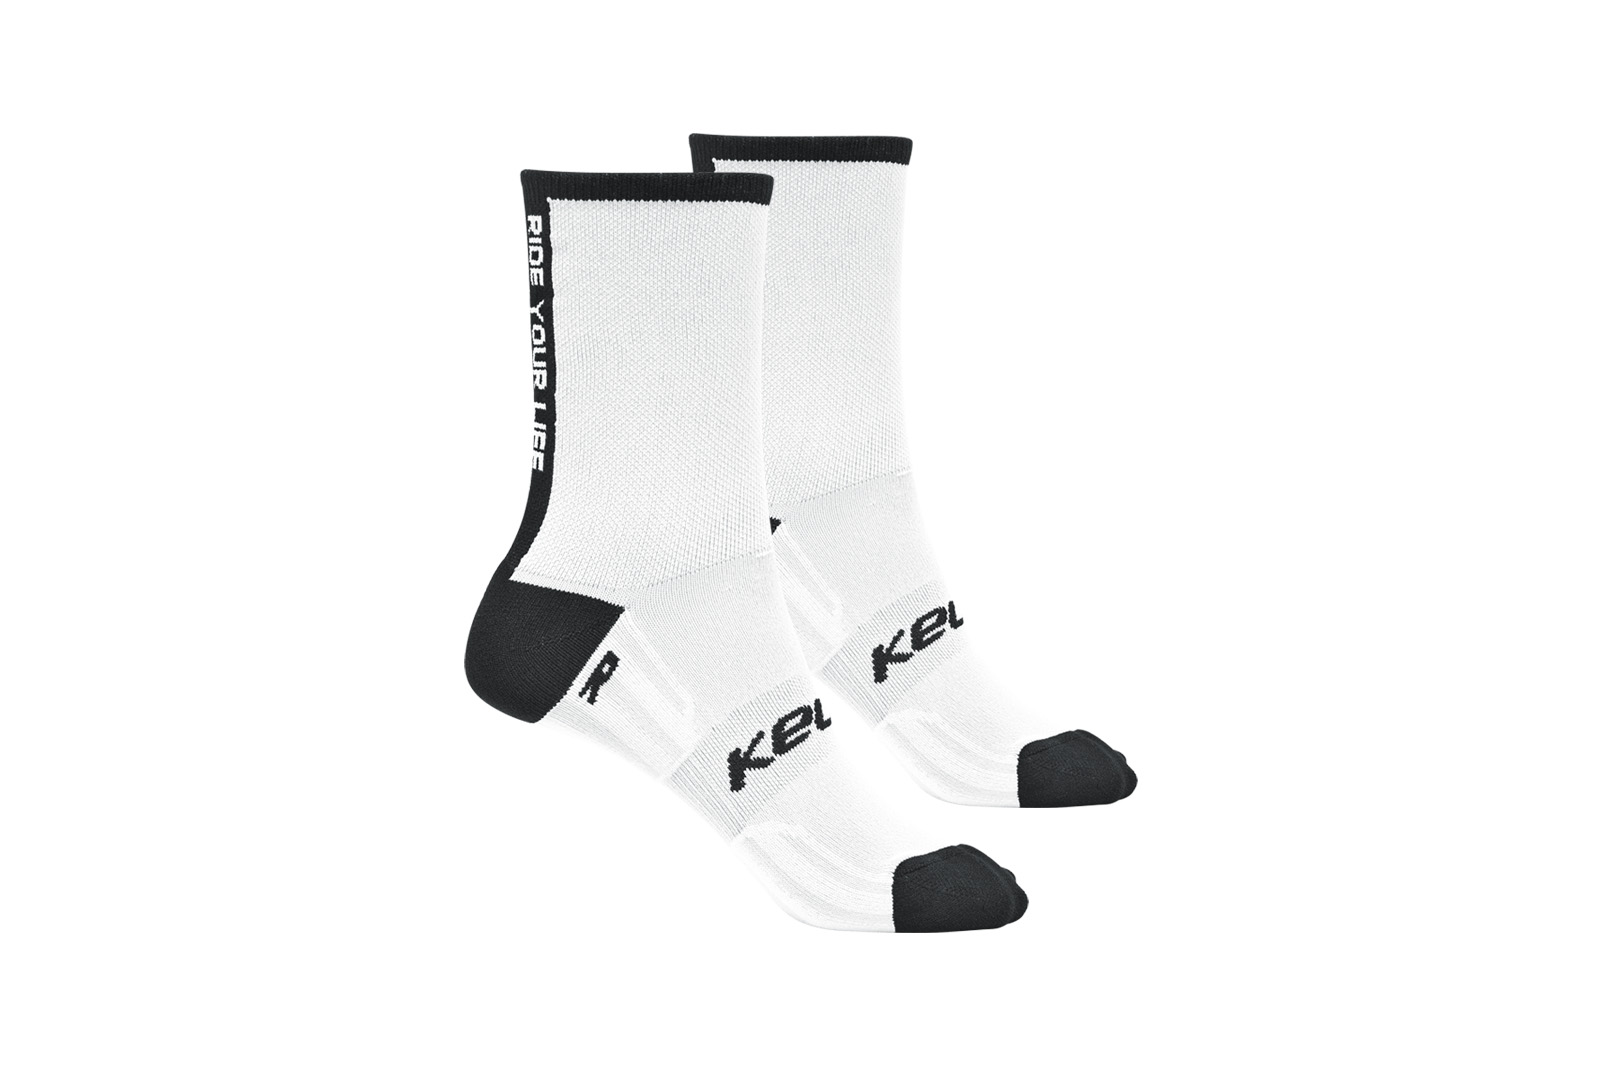 Socken KELLYS PRO Race white 38-42 (016) - bagier Sports GmbH